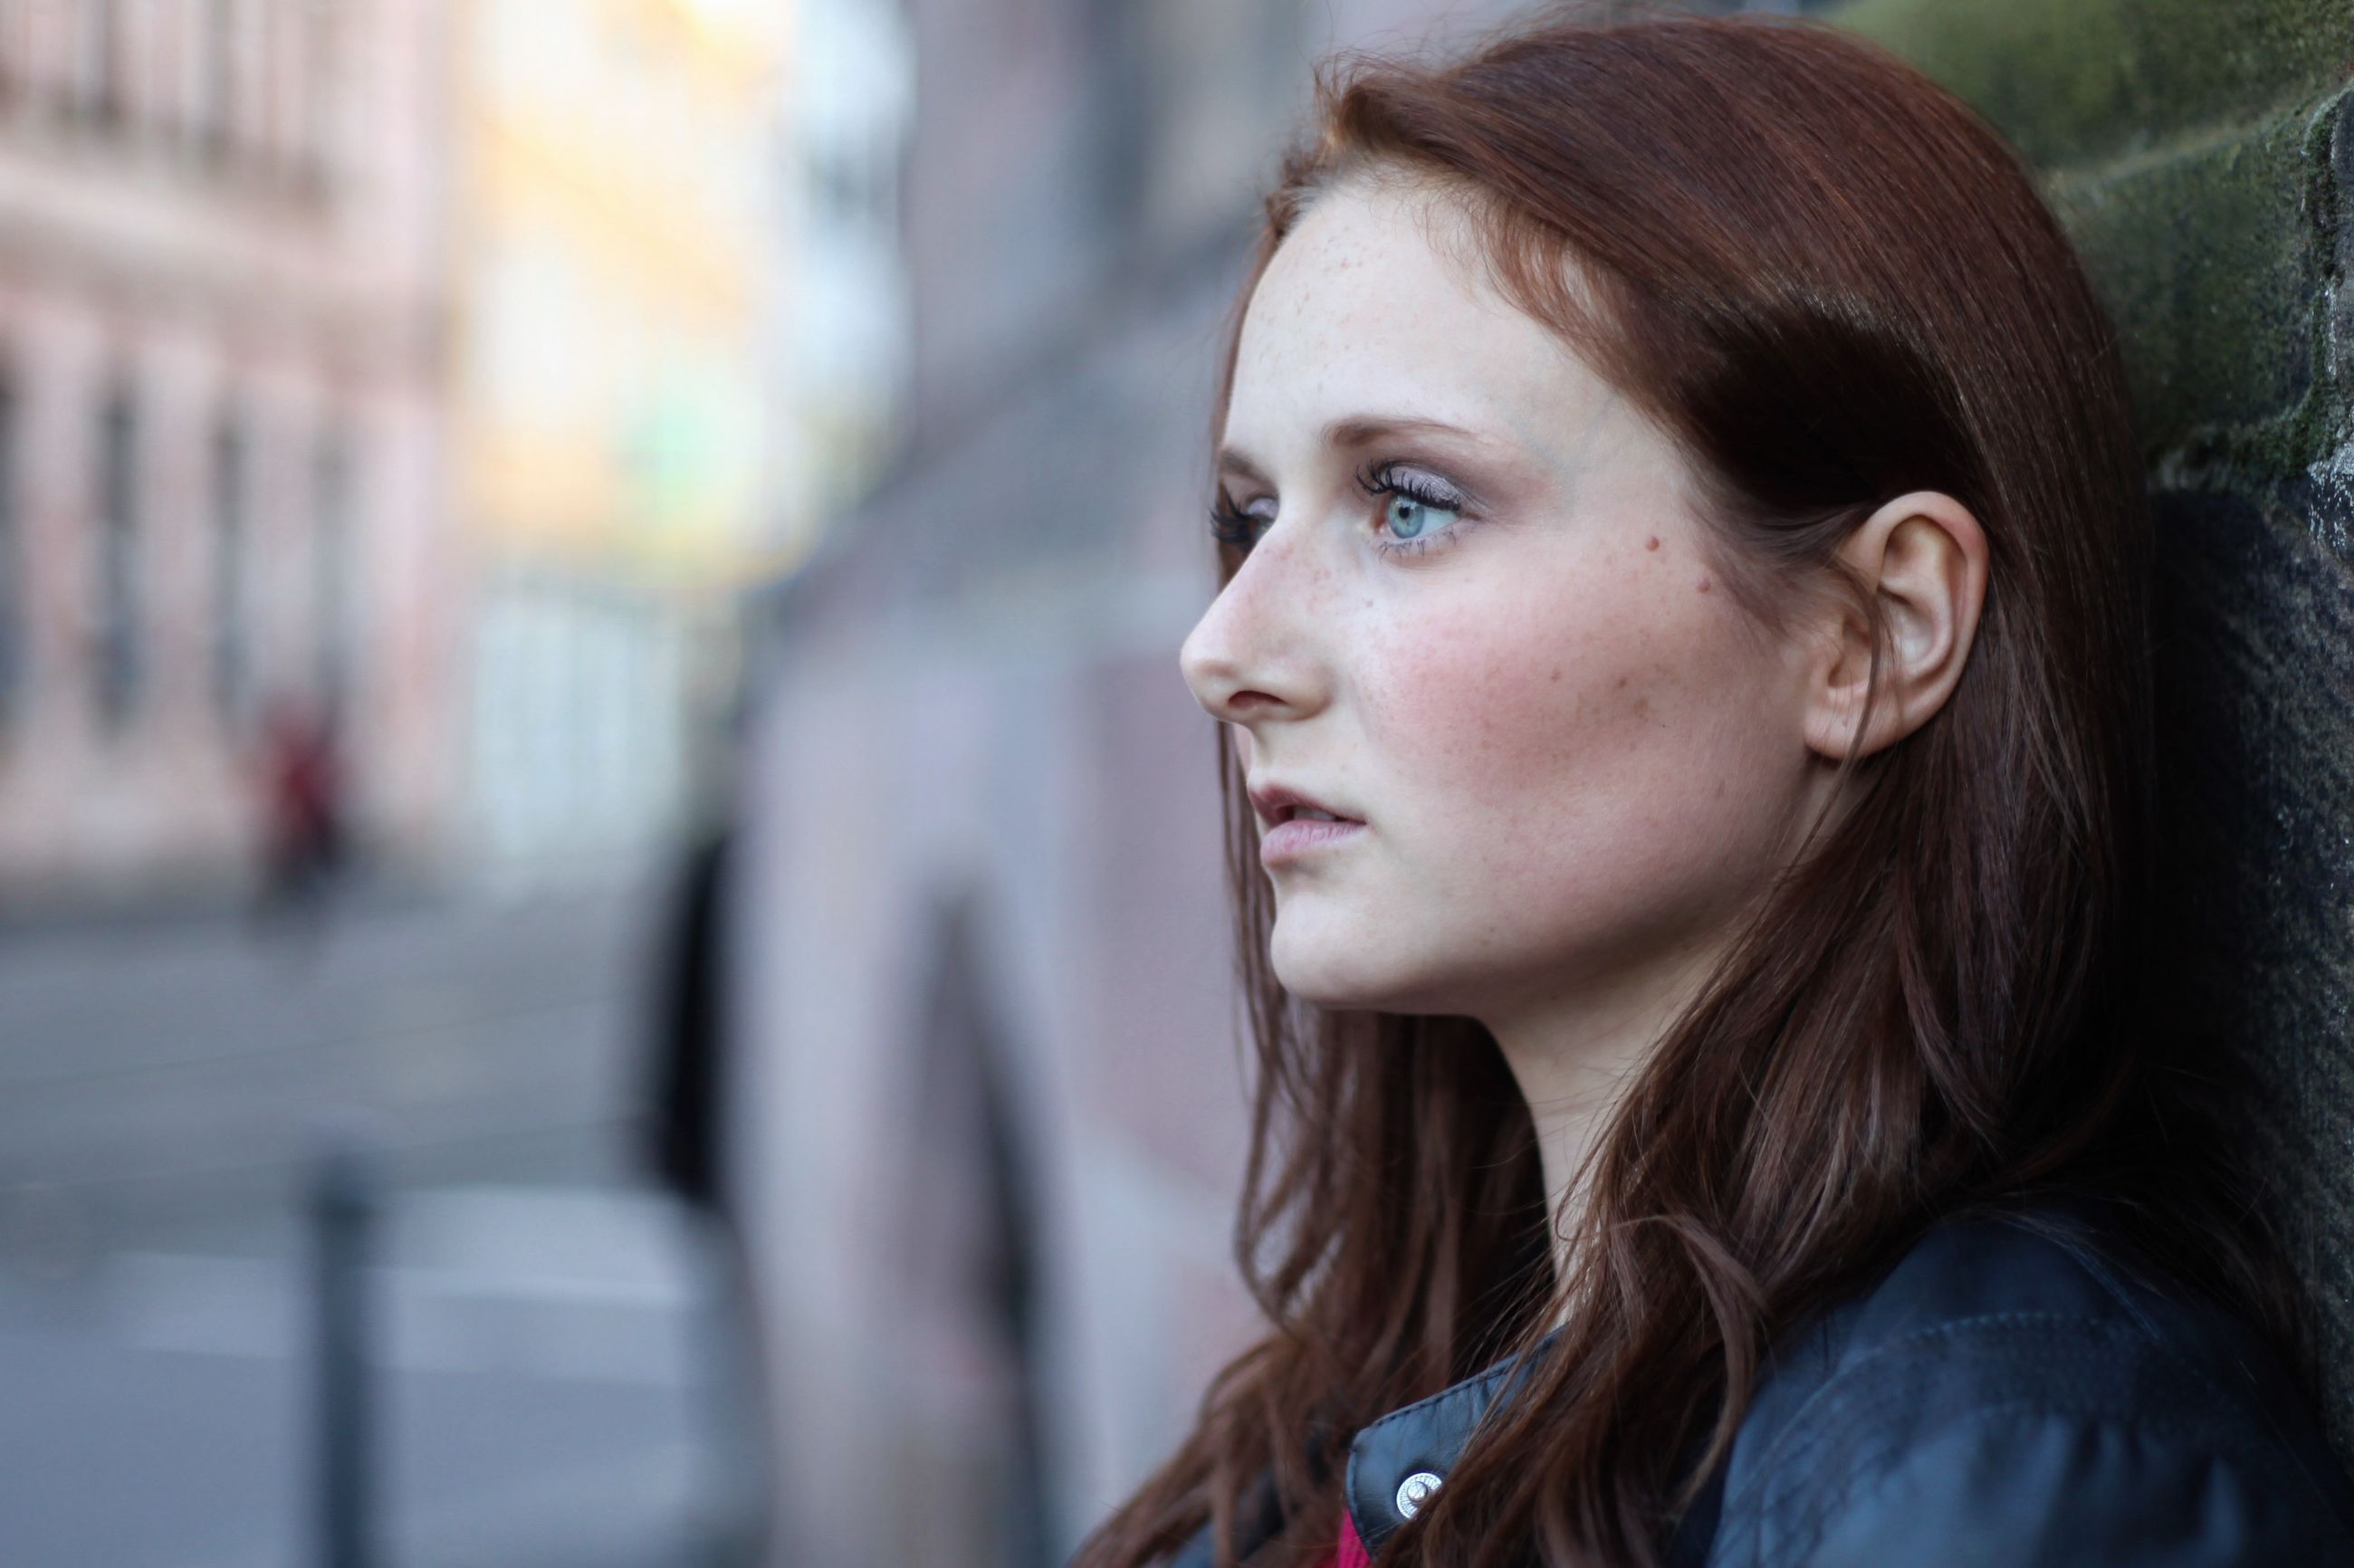 young adult, one person, contemplation, focus on foreground, young women, headshot, real people, outdoors, beautiful woman, day, close-up, one young woman only, people